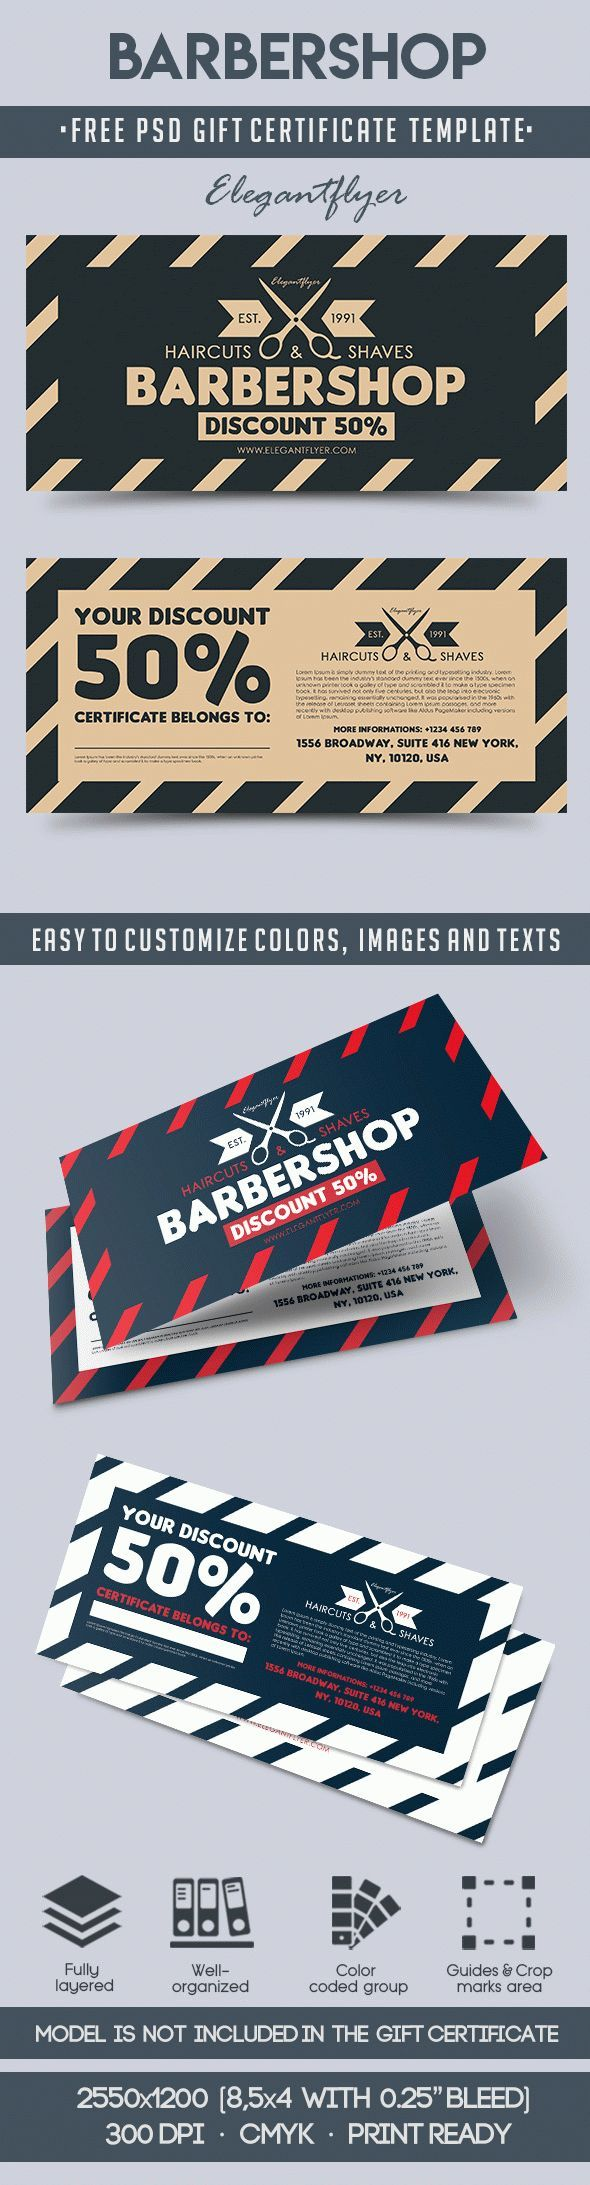 The 66 best free gift certificate templates images on pinterest barbershop free gift certificate psd template yelopaper Gallery